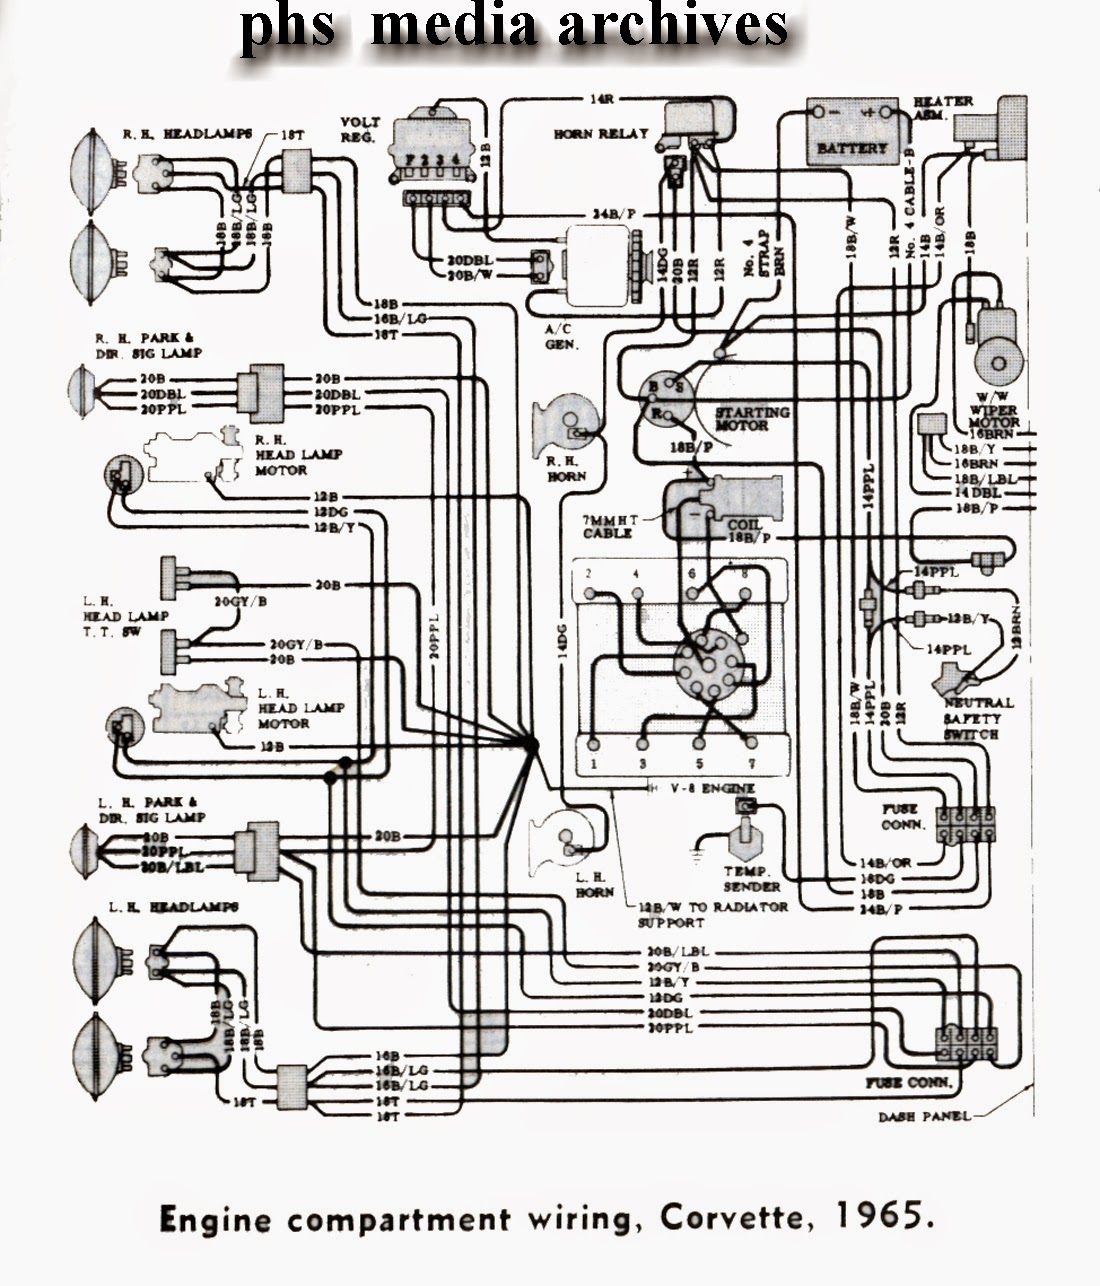 WRG-8096] V8 Chevy Engine Wiring Diagram 1974 on